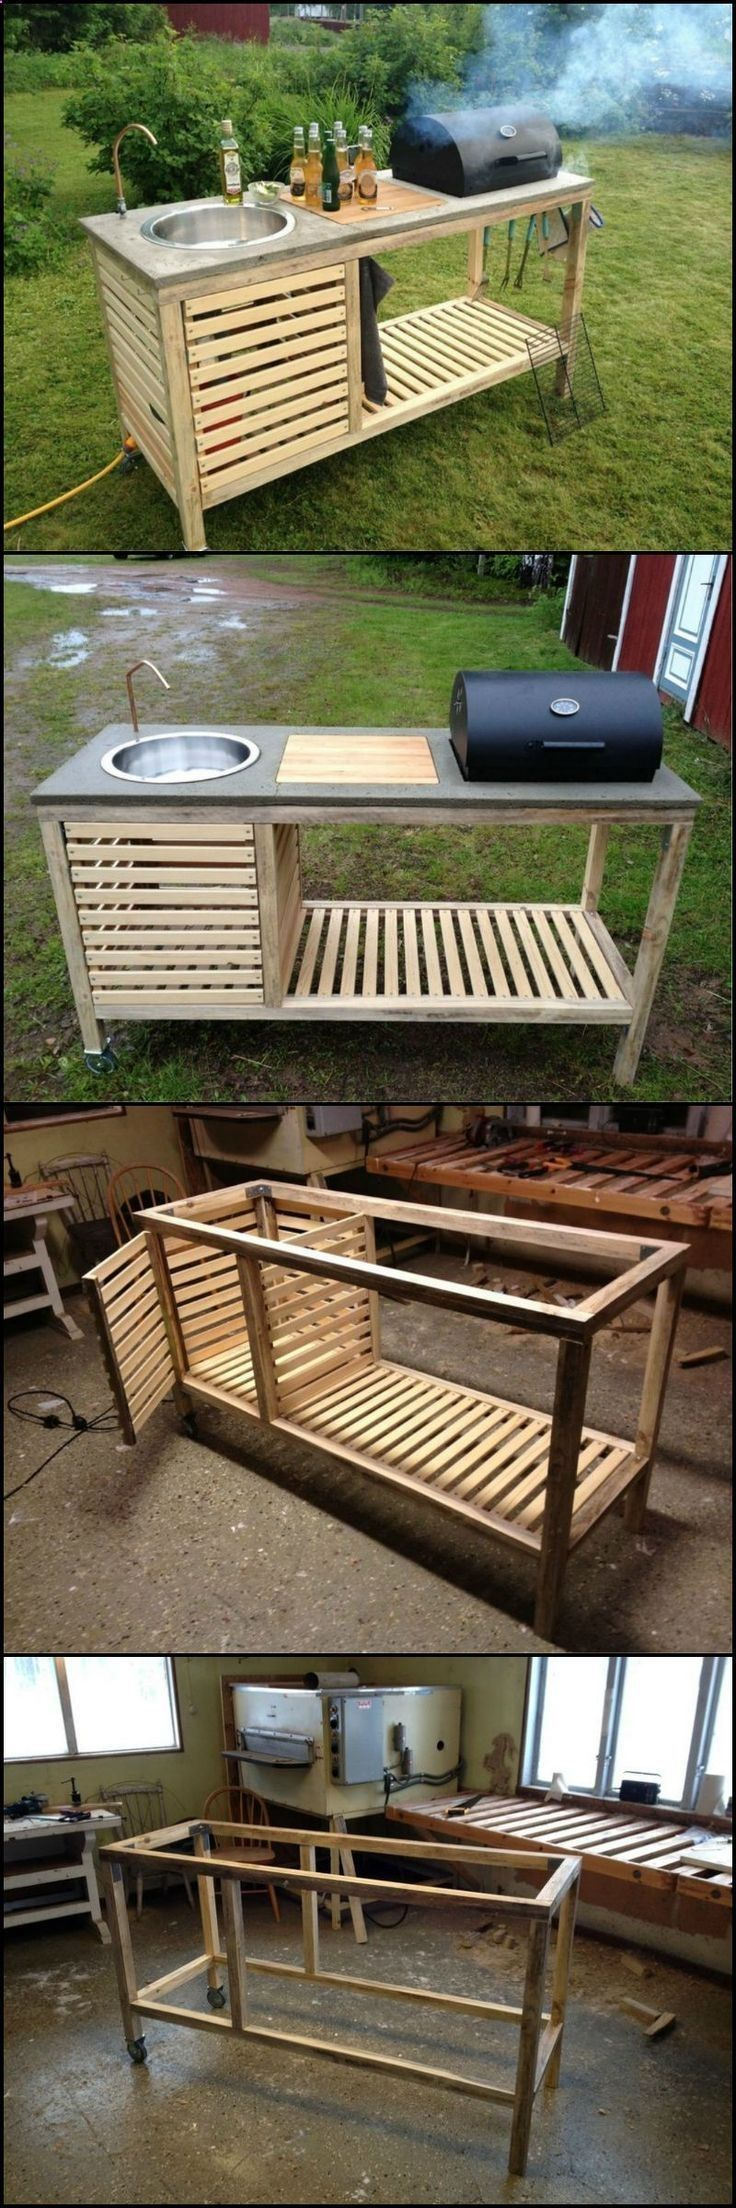 Shed DIY How To Build A Portable Kitchen For Your